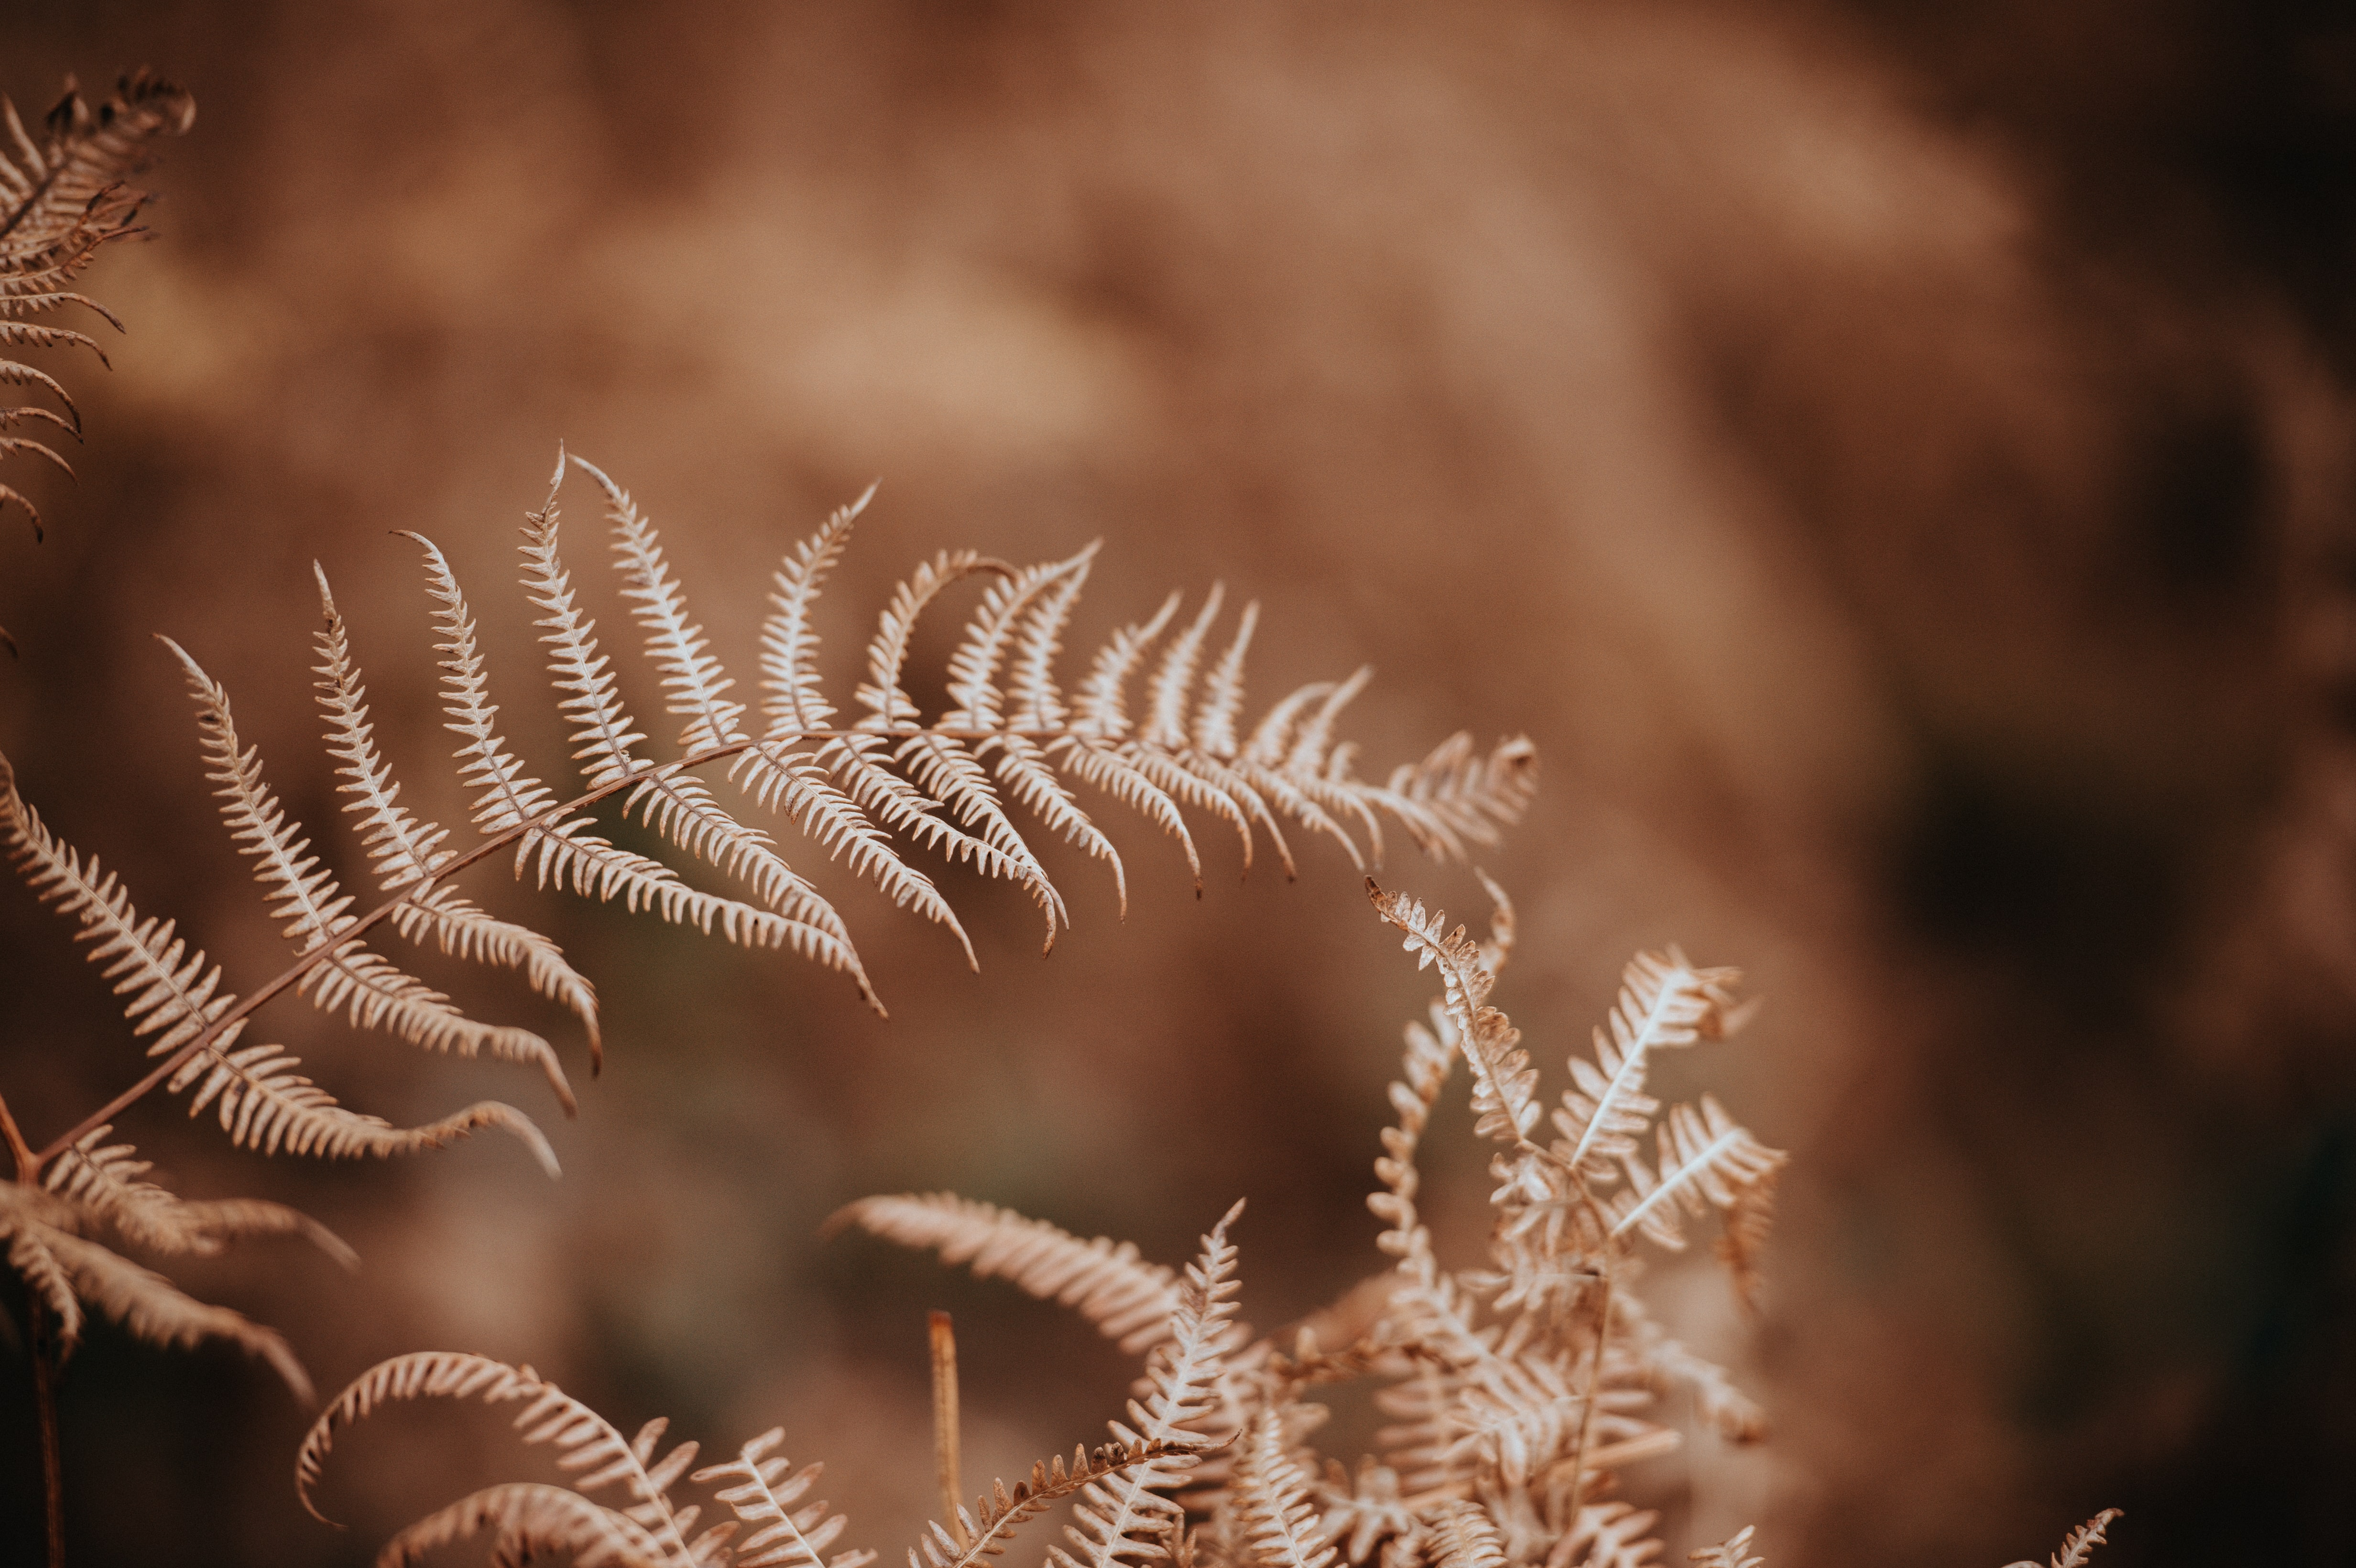 fern plans in sepia photography